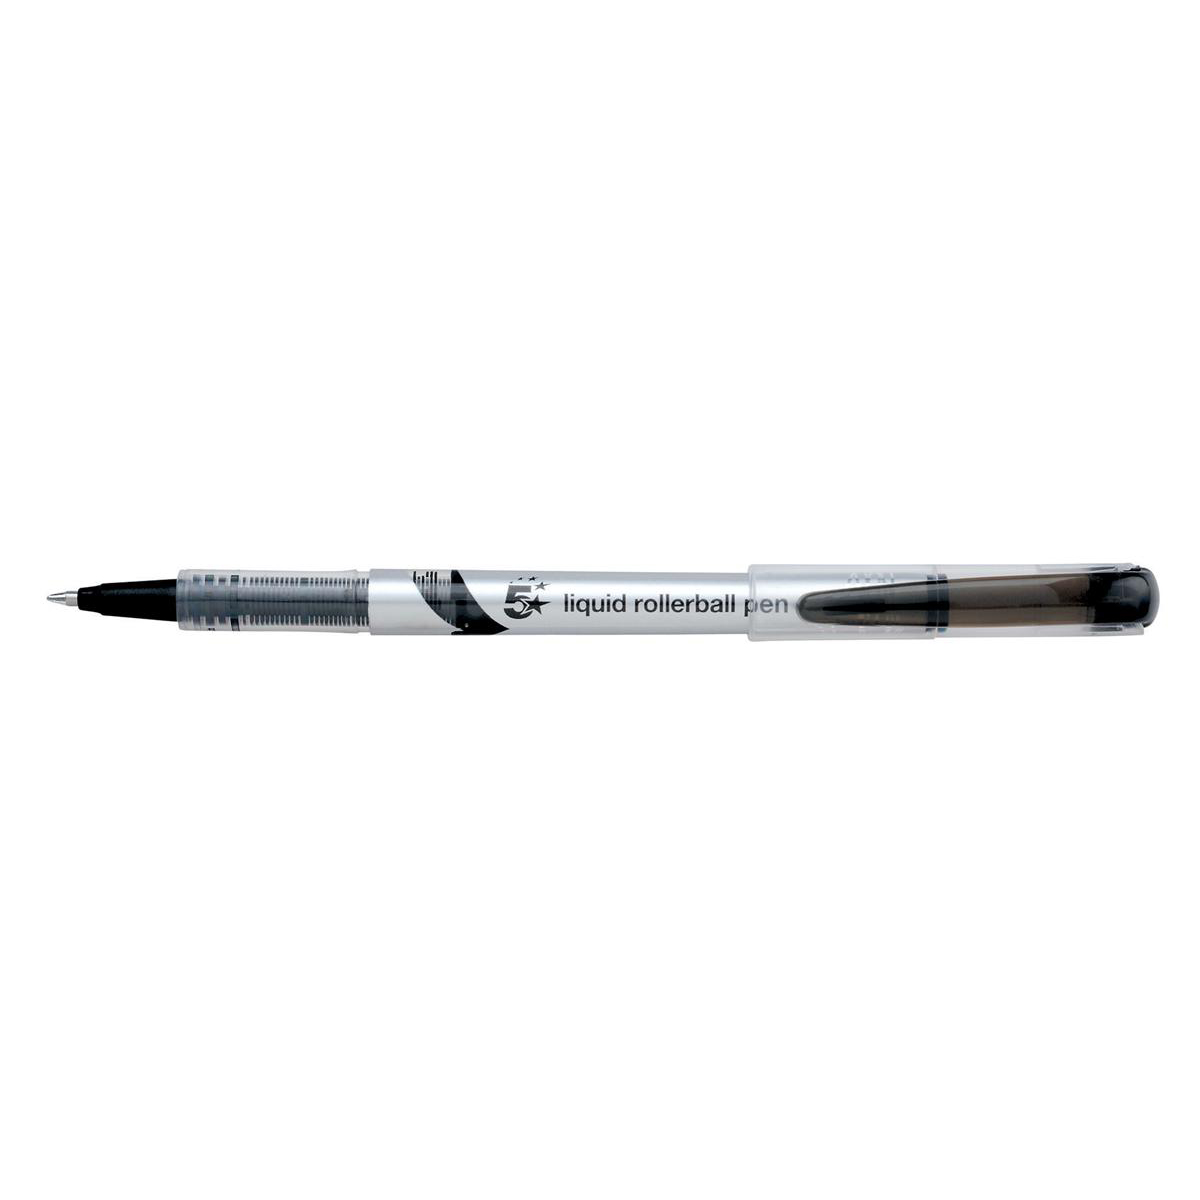 5 Star Premier Rollerball Pen Liquid Fine 0.7mm Tip 0.5mm Line Black